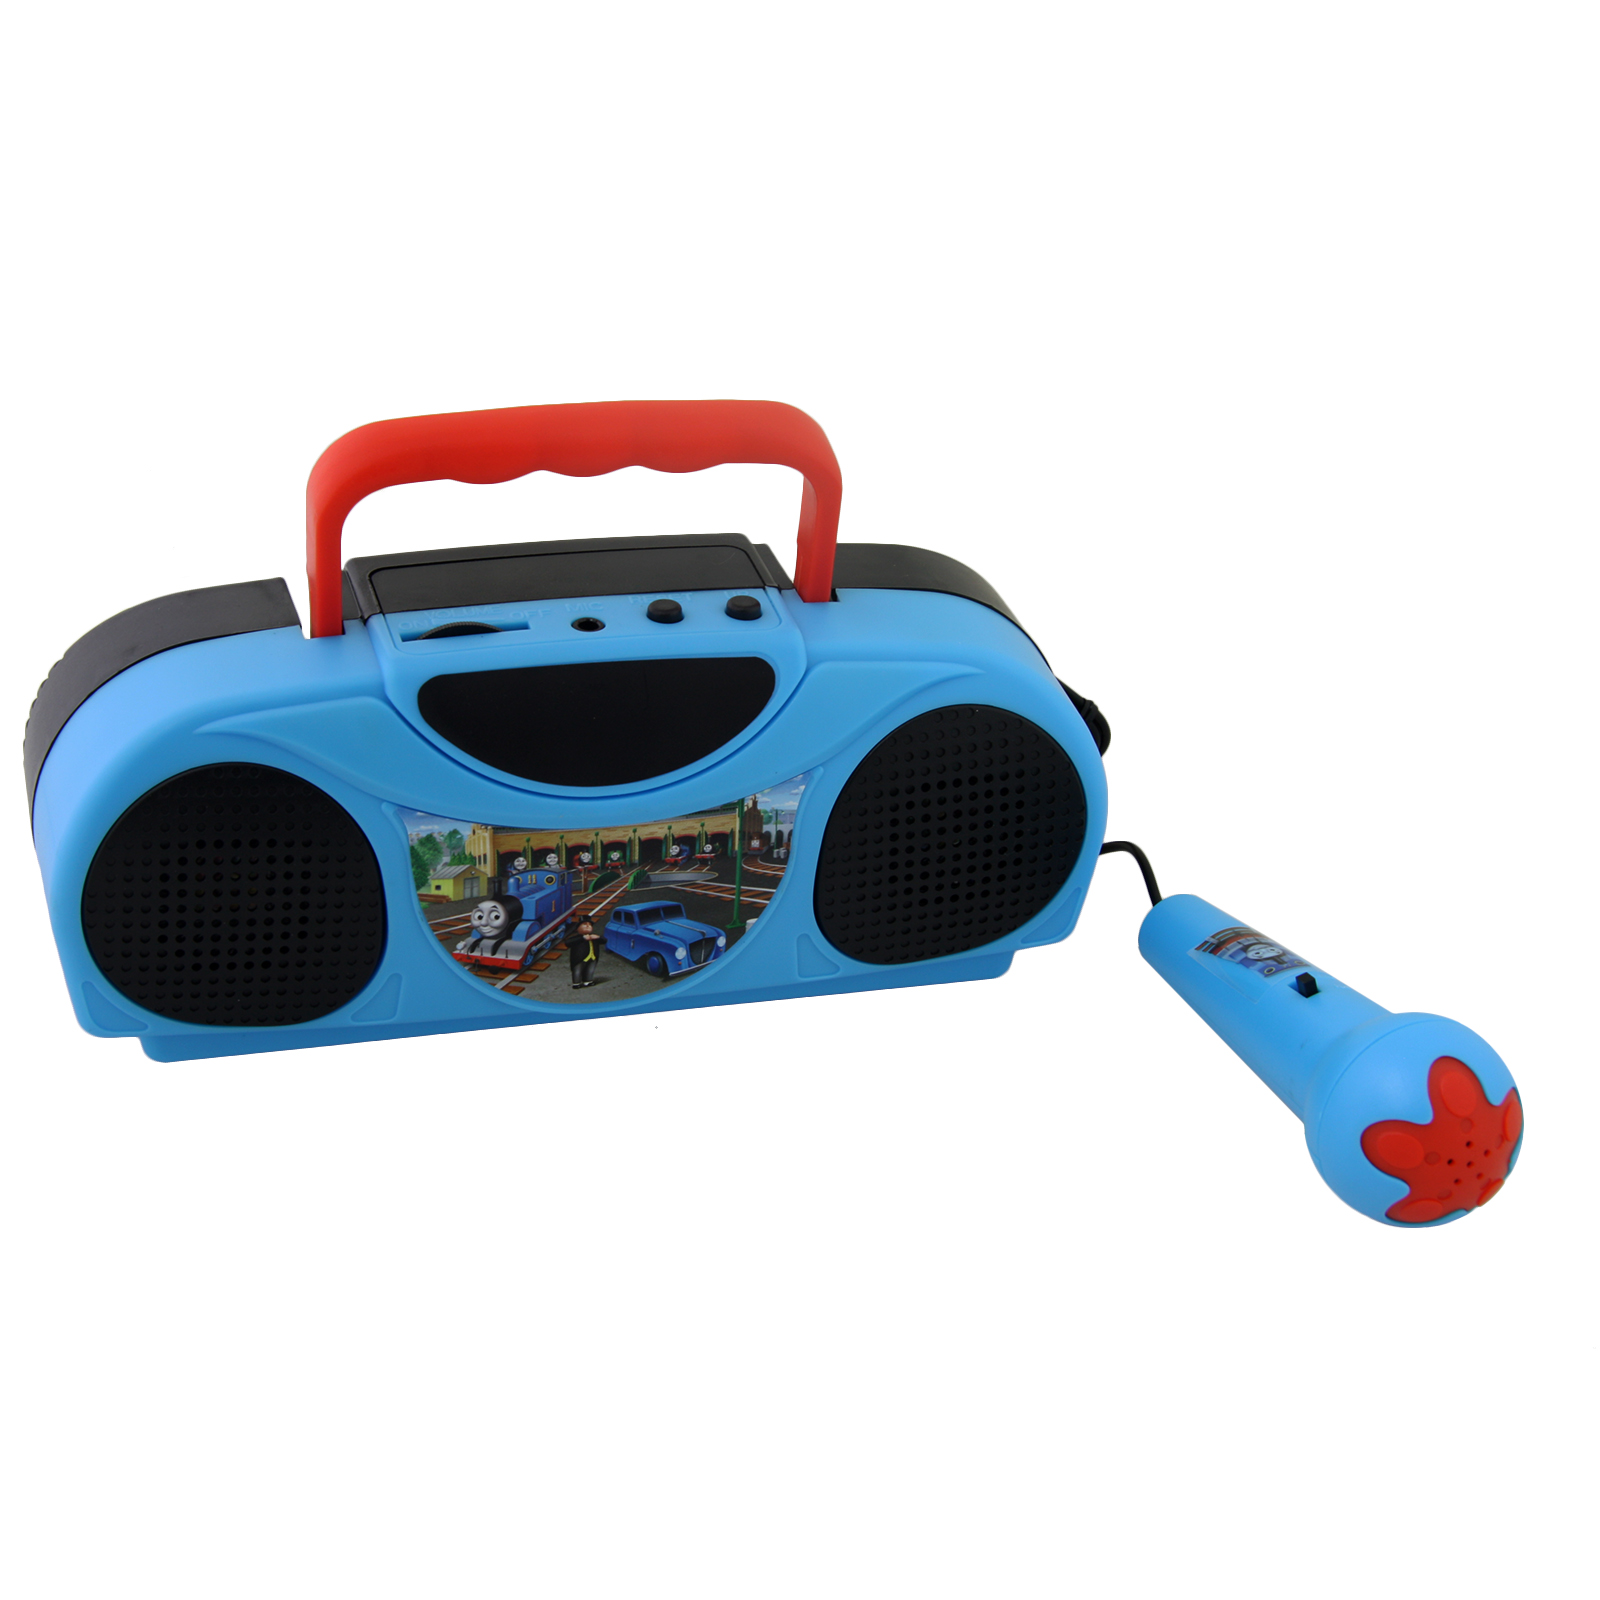 Thomas and Friends Portable Radio Karaoke Kit With Microphone